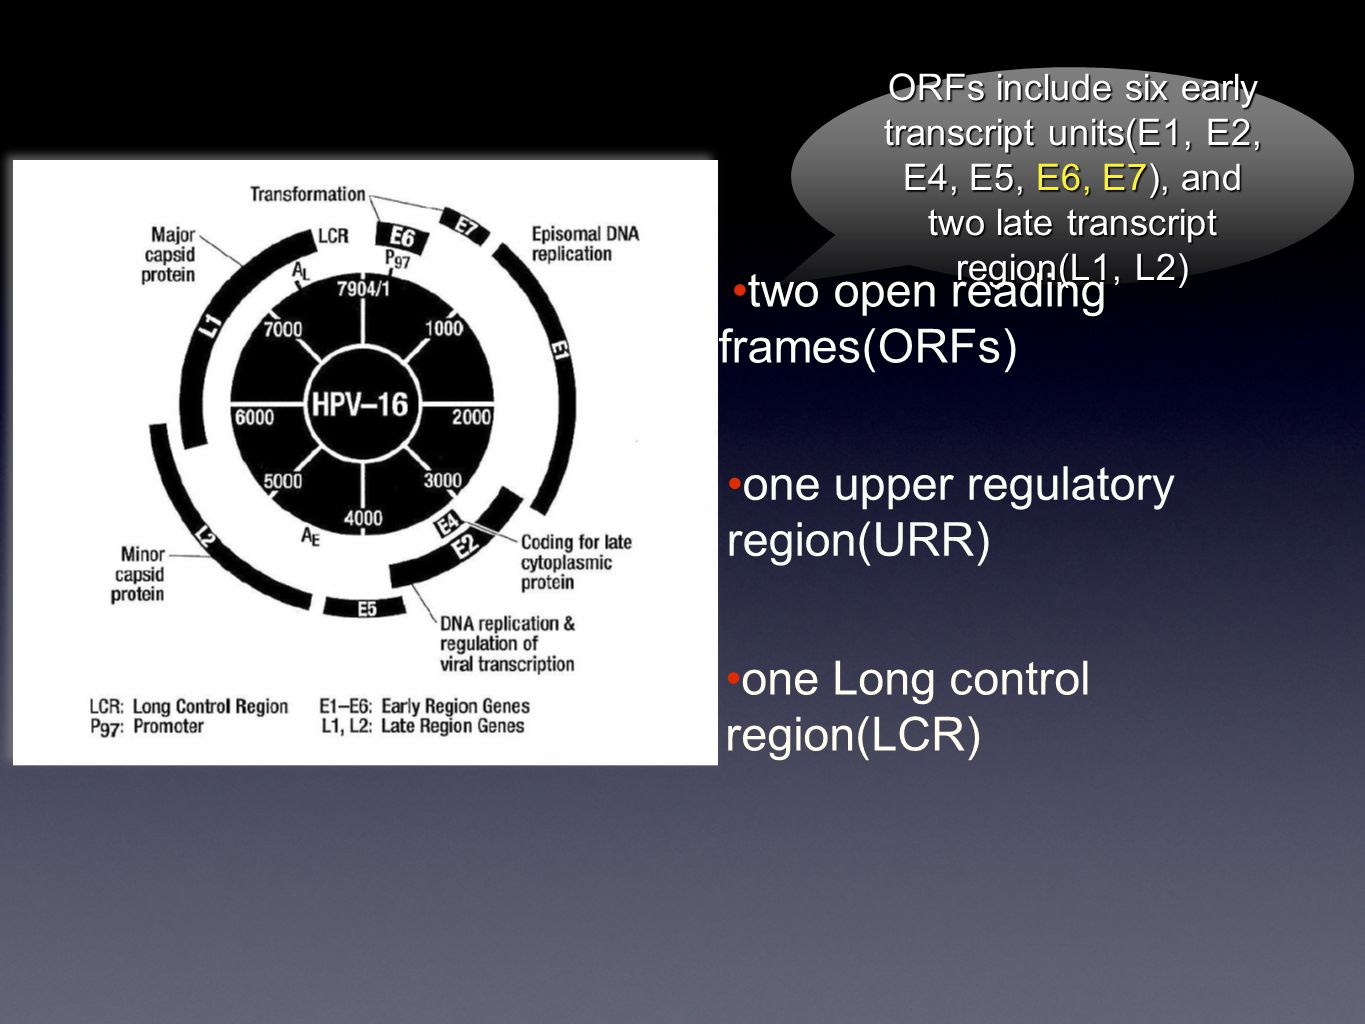 ORFs include six early transcript units(E1, E2, E4, E5, E6, E7), and two late transcript region(L1, L2) two open reading frames(ORFs) one upper regulatory region(URR) one Long control region(LCR)